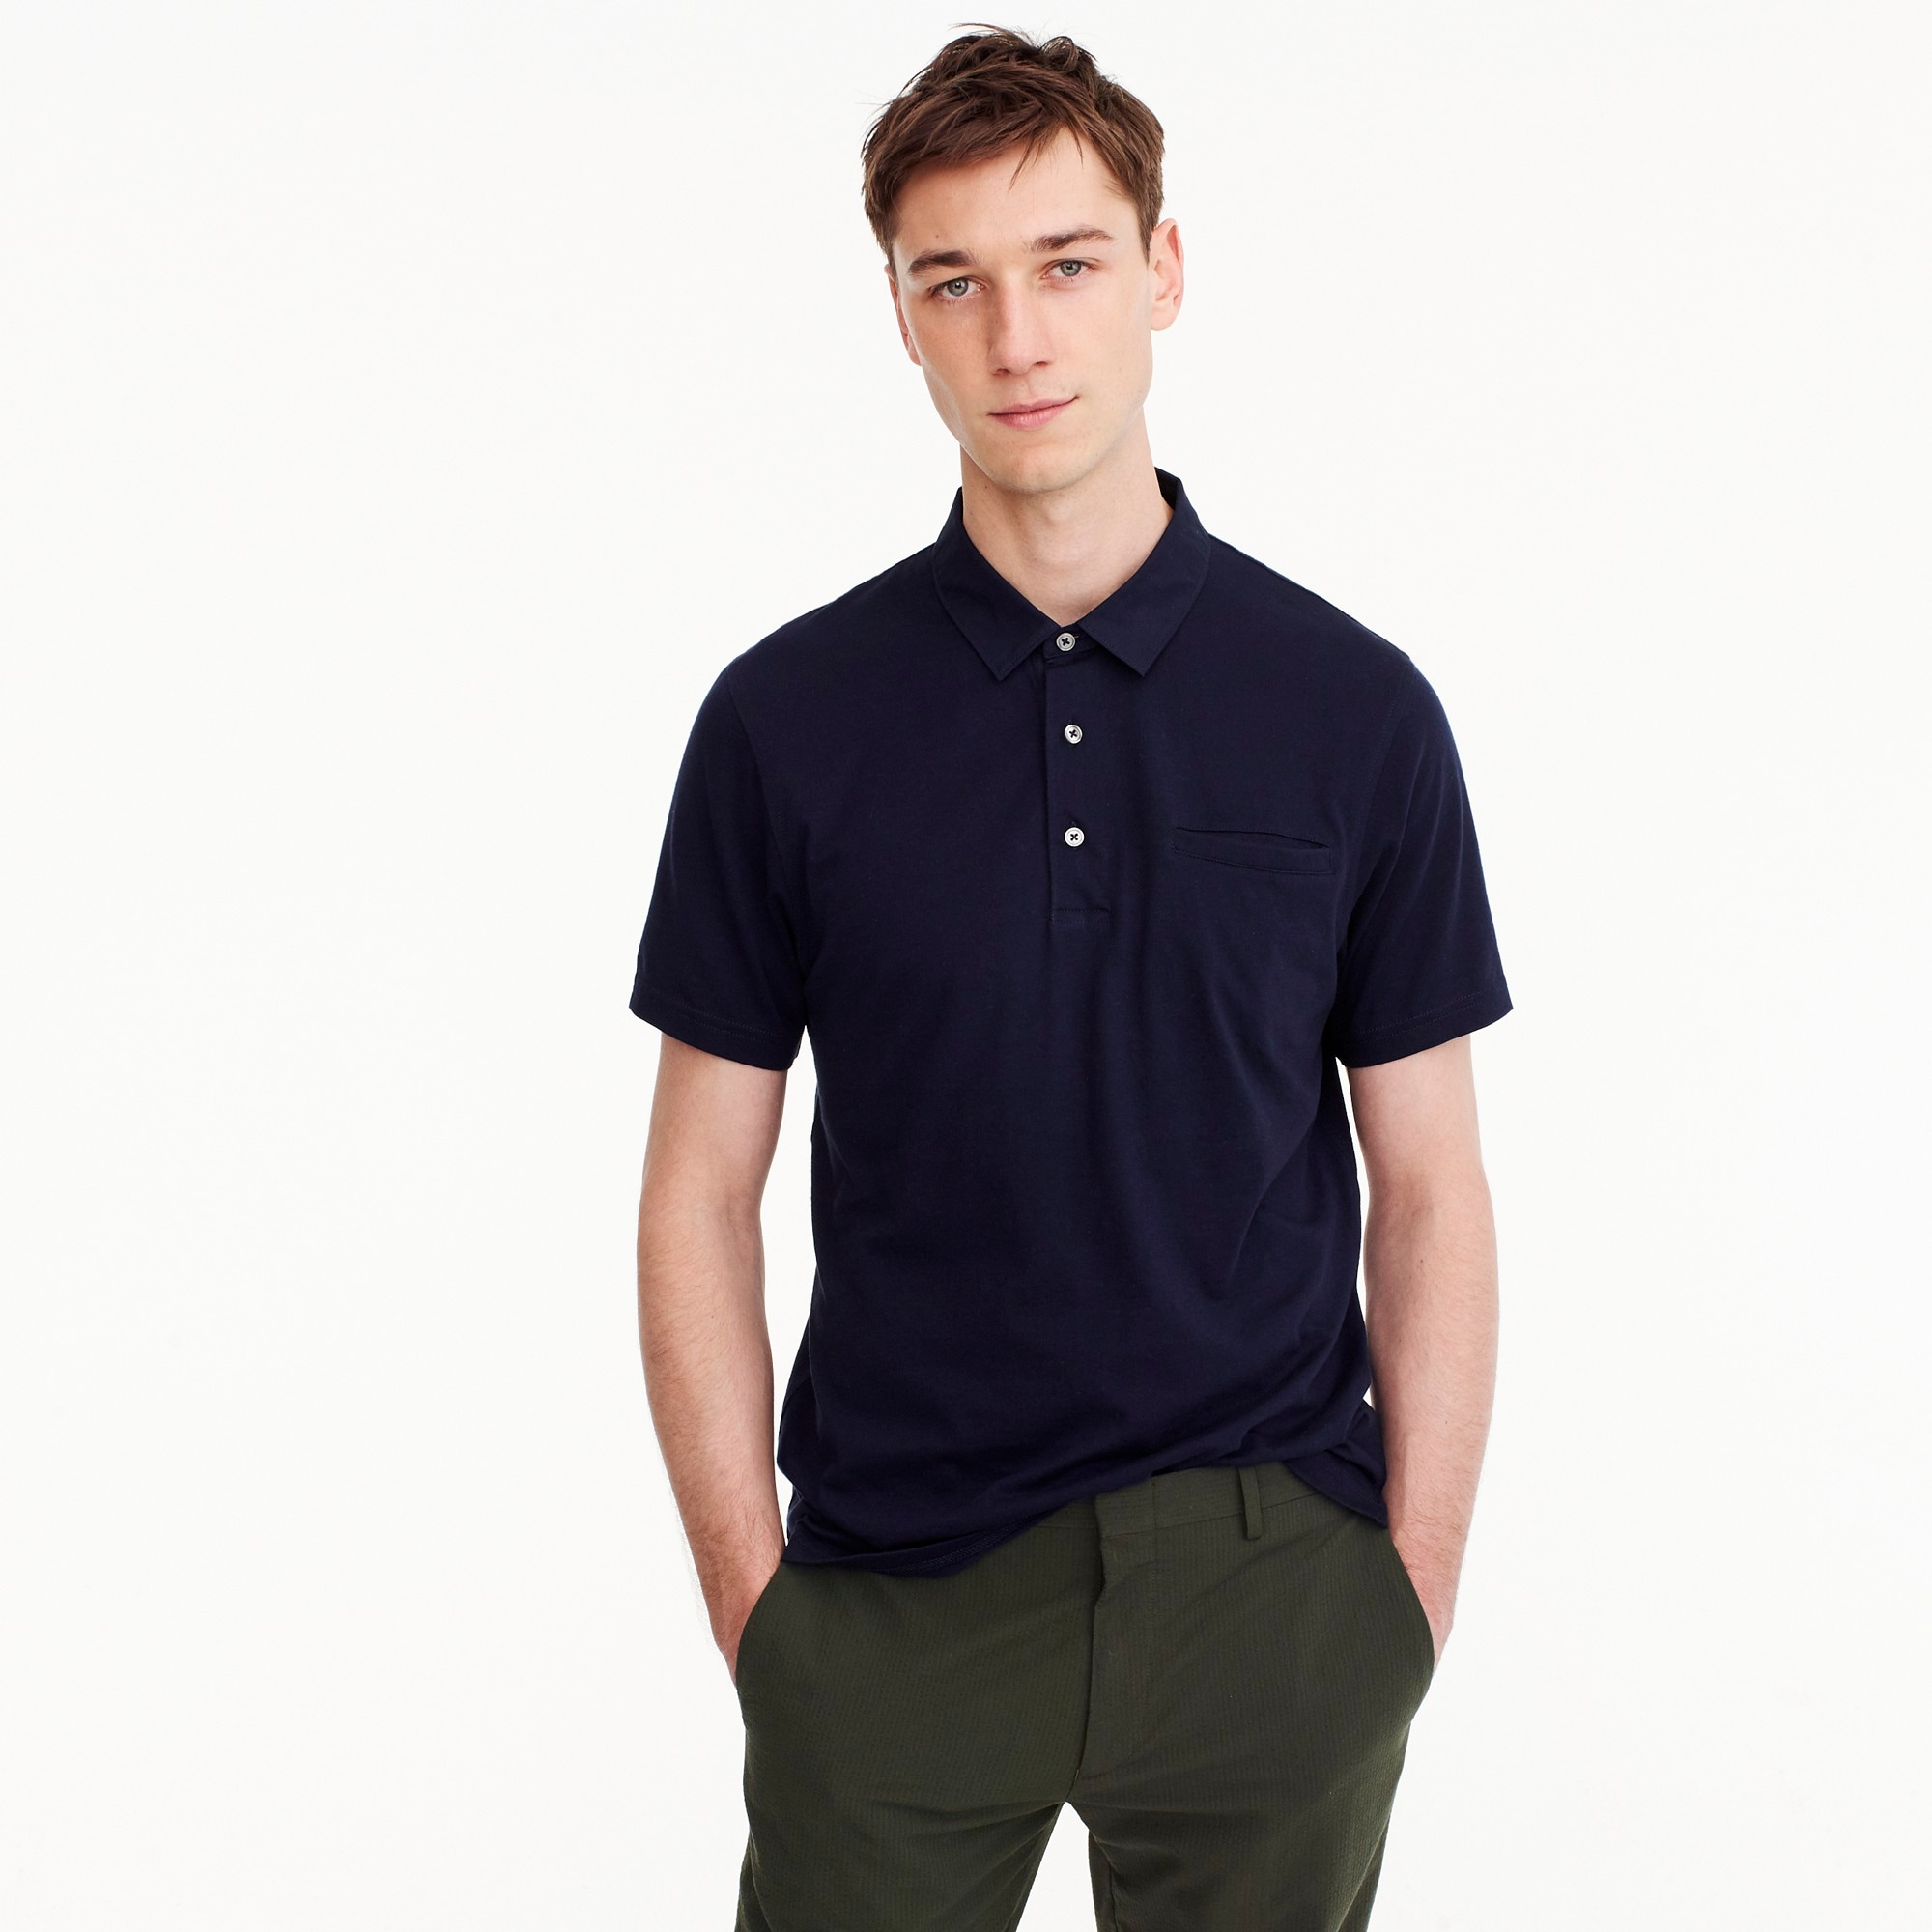 Image 1 for Woven-collar polo in Pima cotton